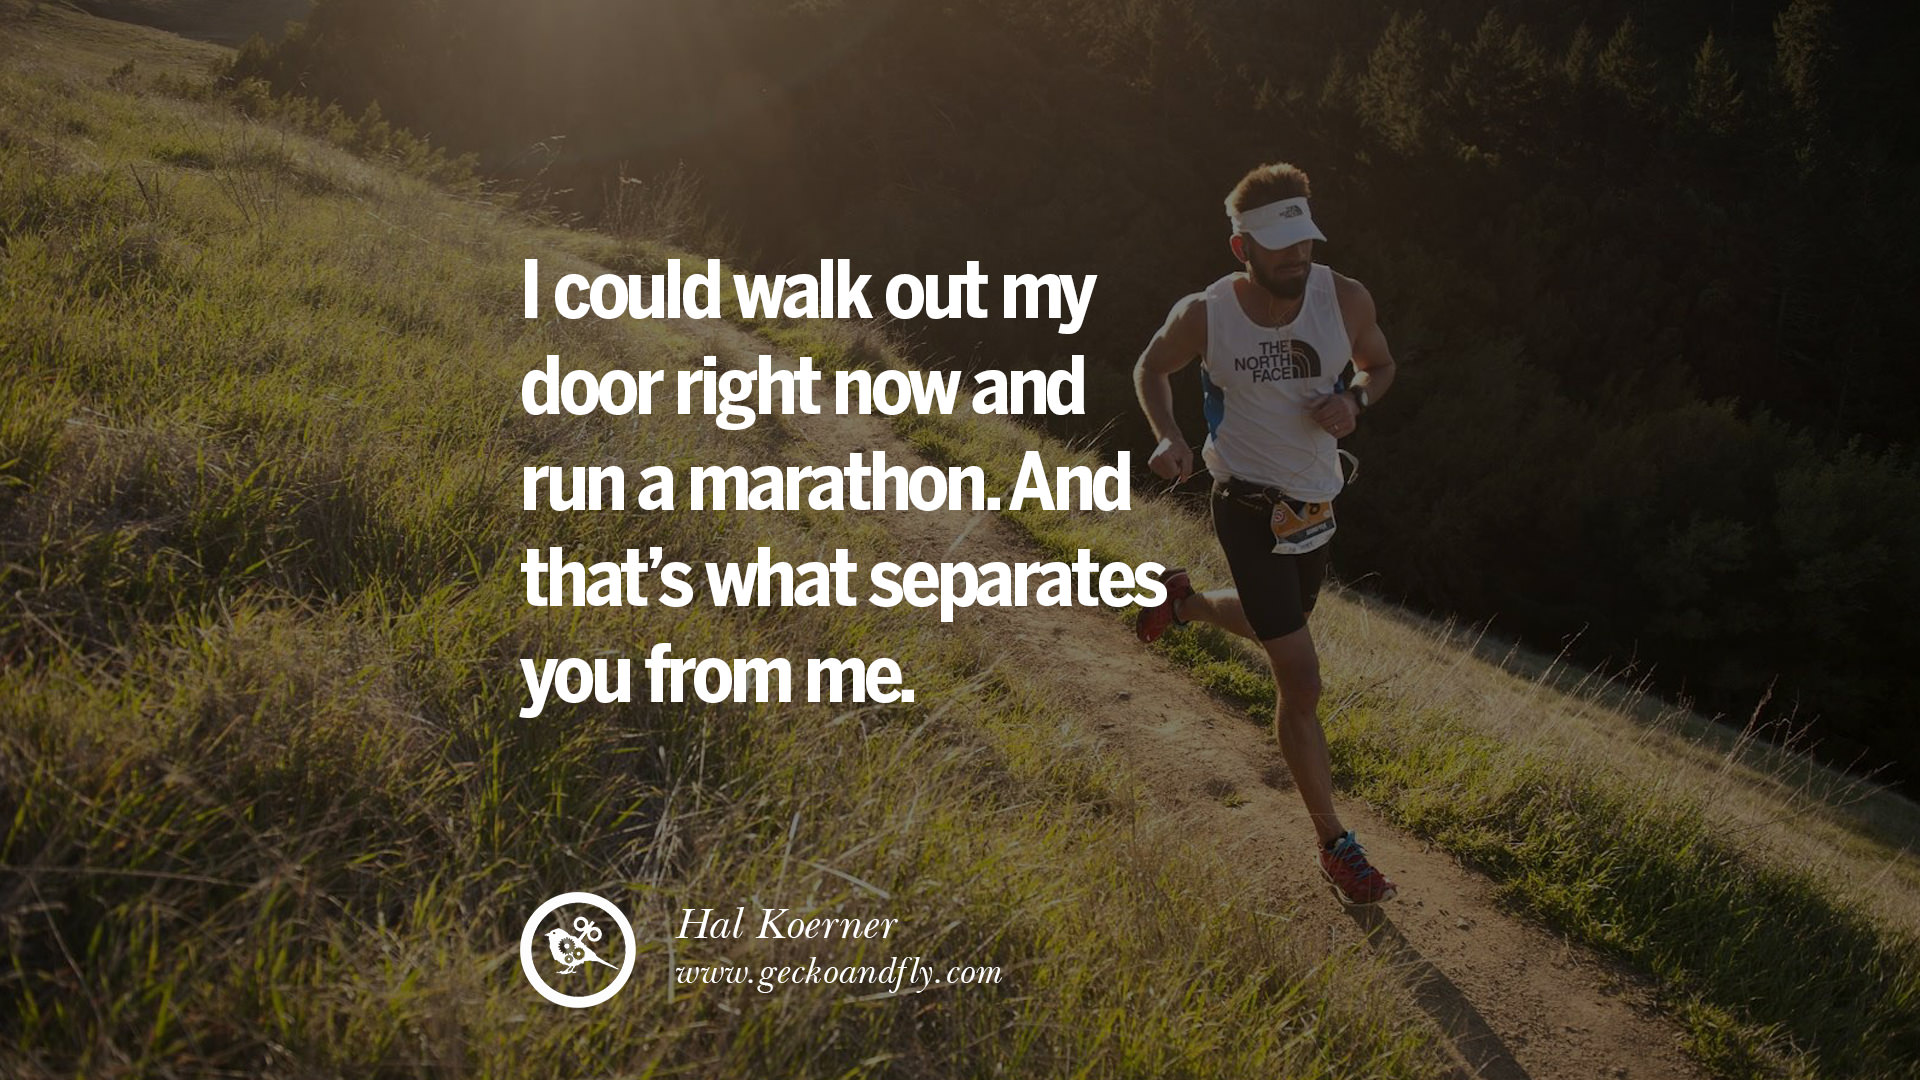 Runners Quotes Wallpapers 18 Inspirational Motivational Poster Quotes For Salespeople